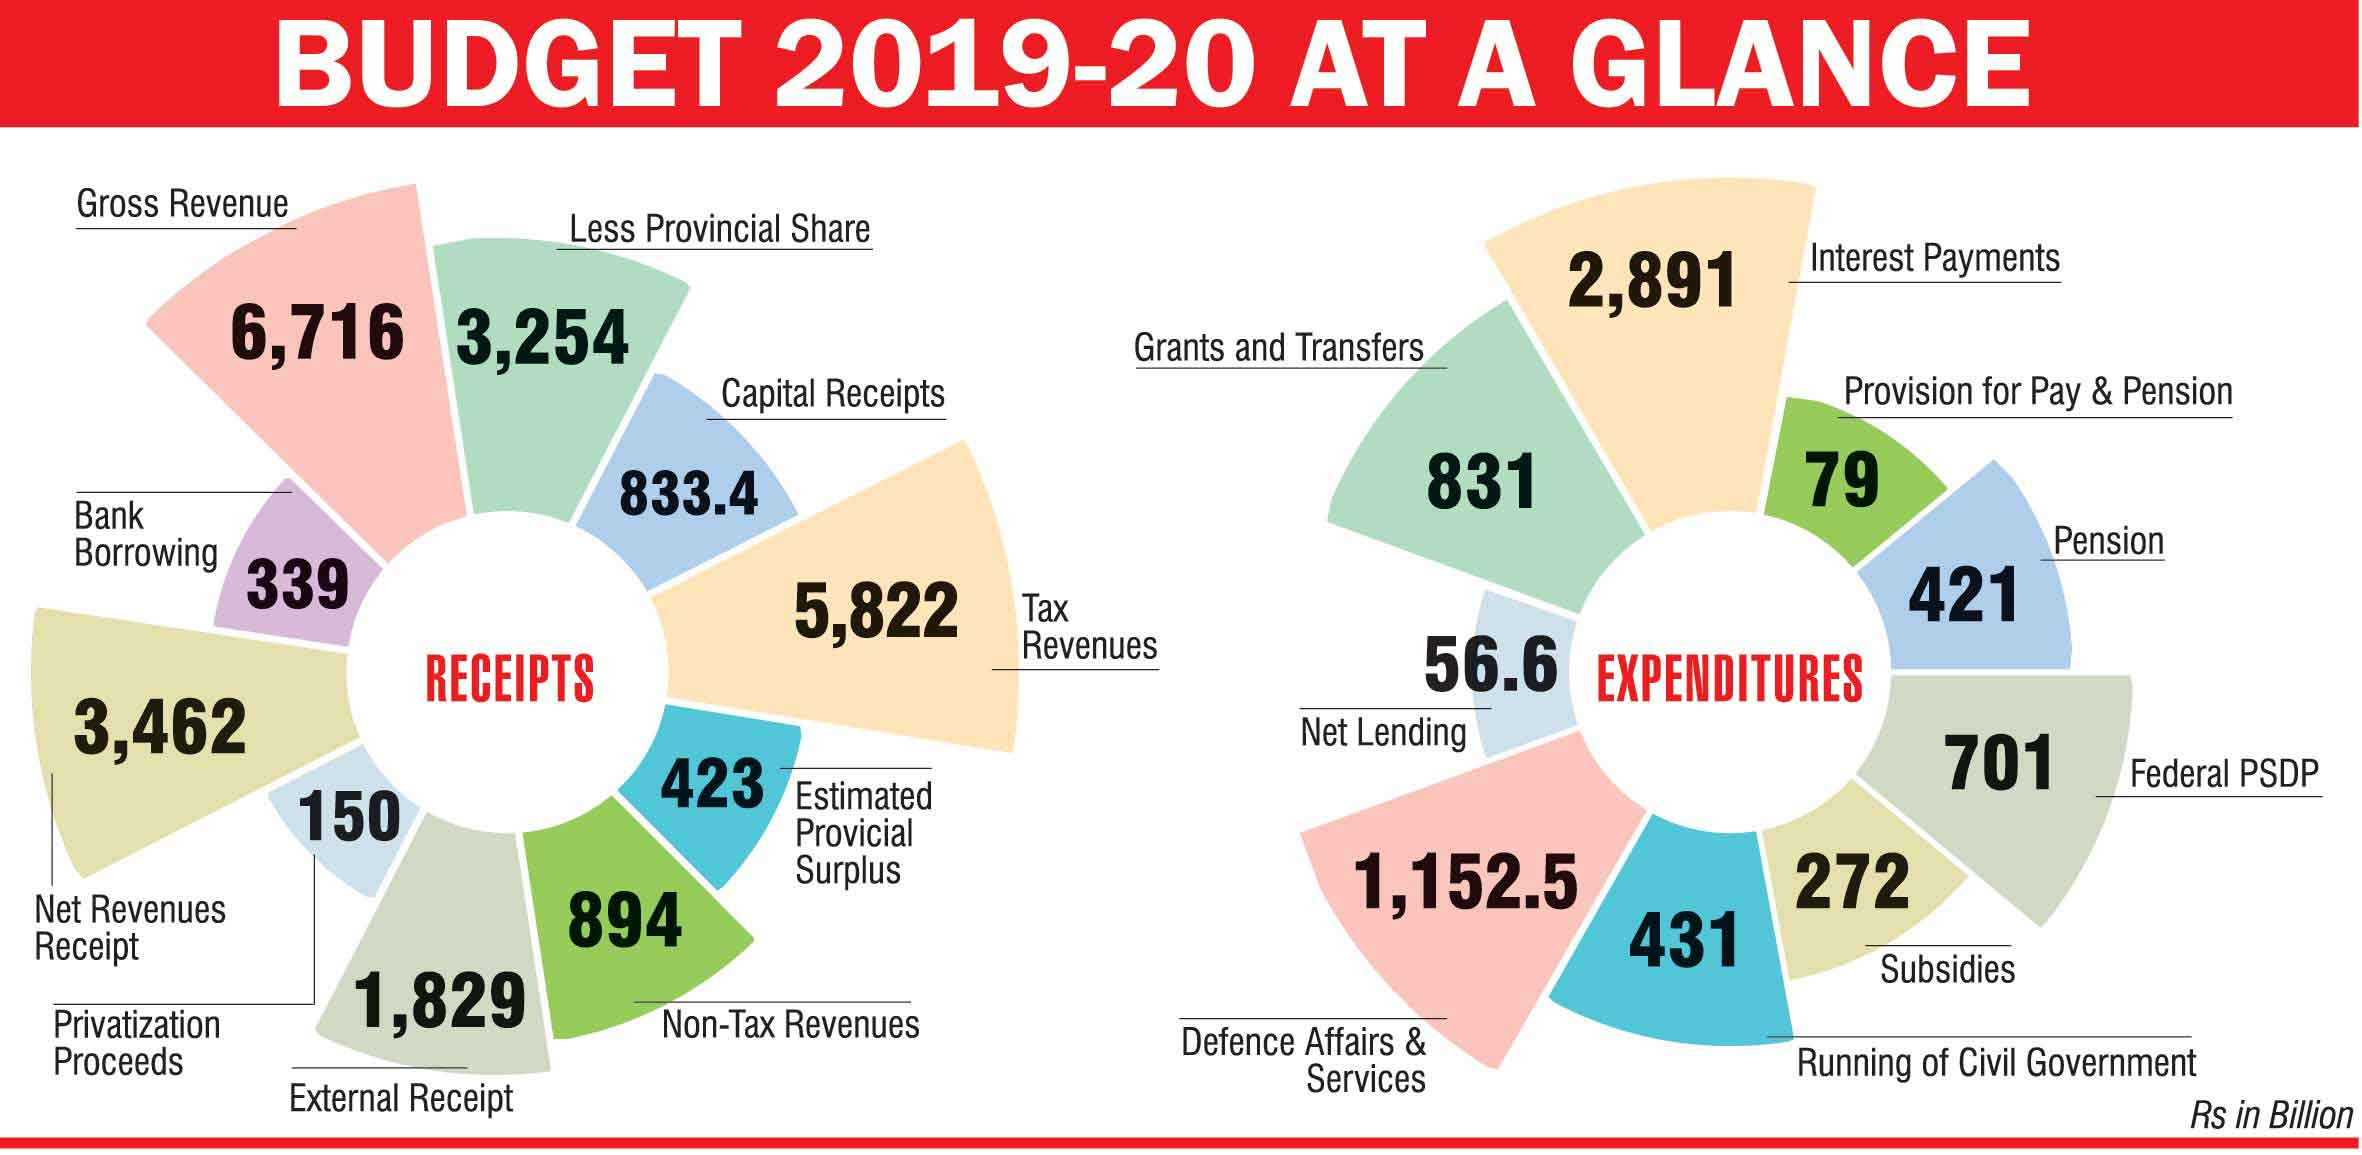 PTI government presents Rs 7,022 billion budget for 2019-20